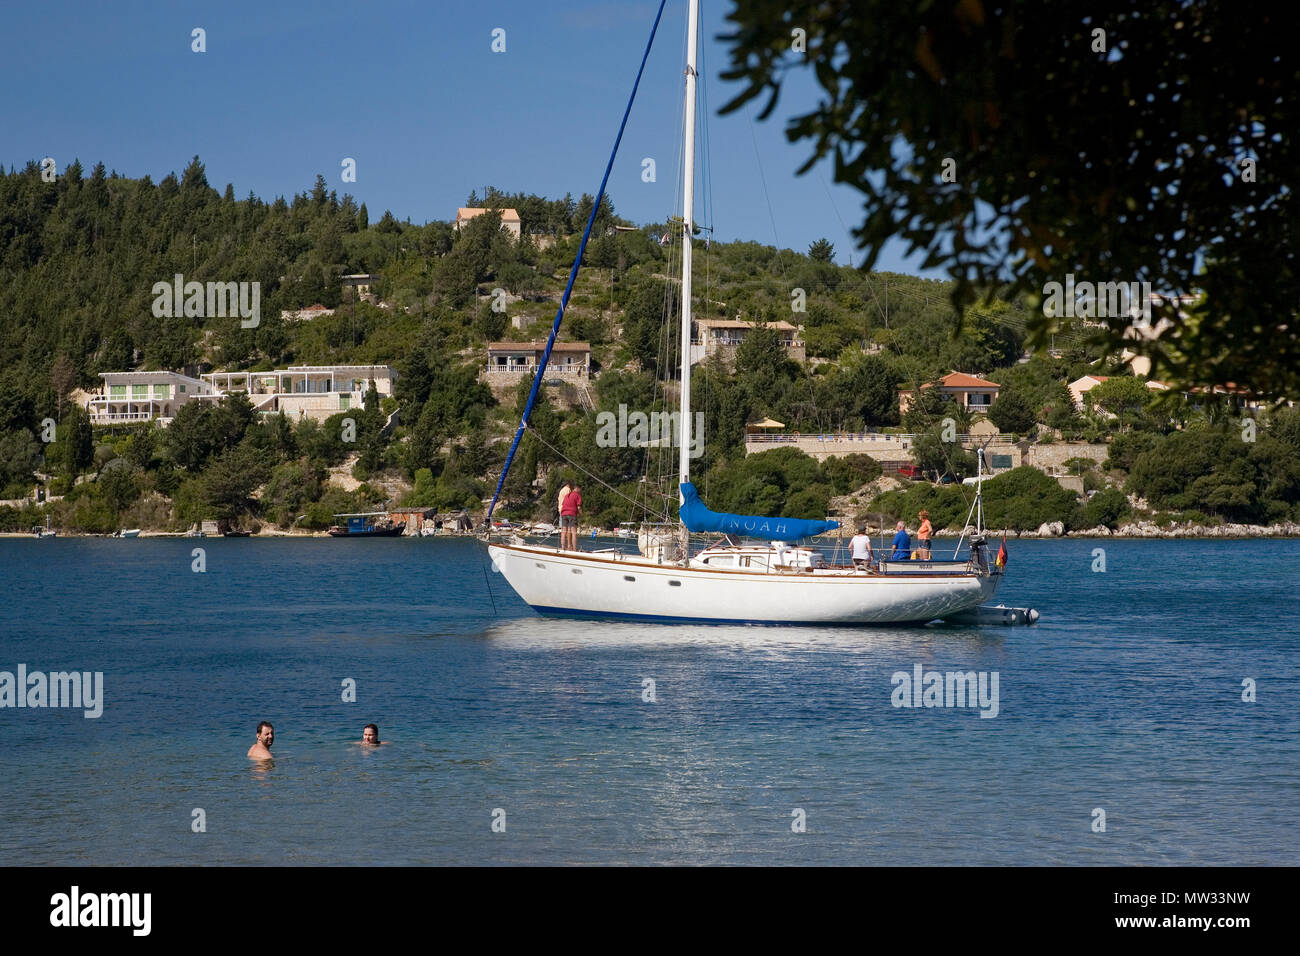 The beach at Moggonissi, at the southern tip of Paxos, Greece: swimmers and an anchored yacht - Stock Image